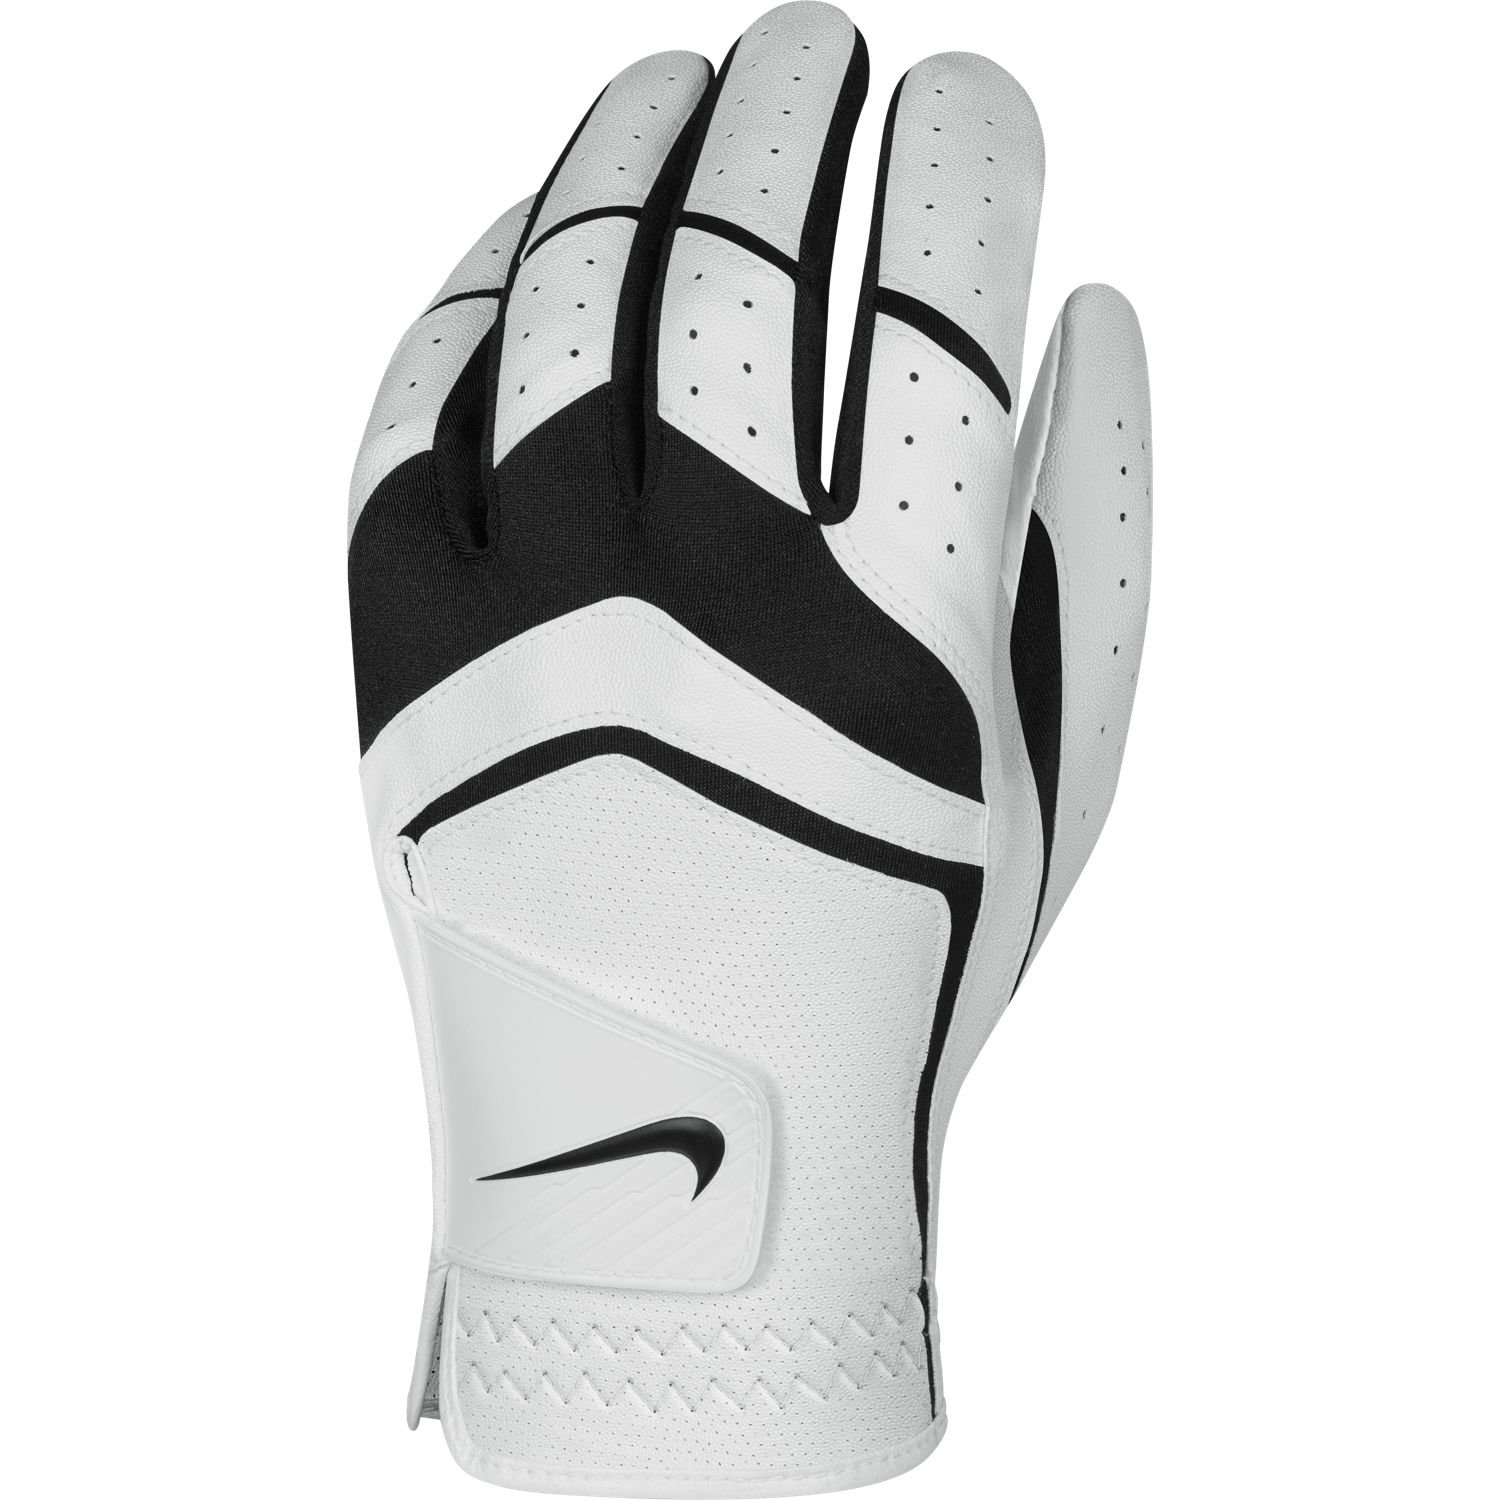 Nike Men's Dura Feel Golf Glove (White), Medium - Cadet, Left Hand by Nike